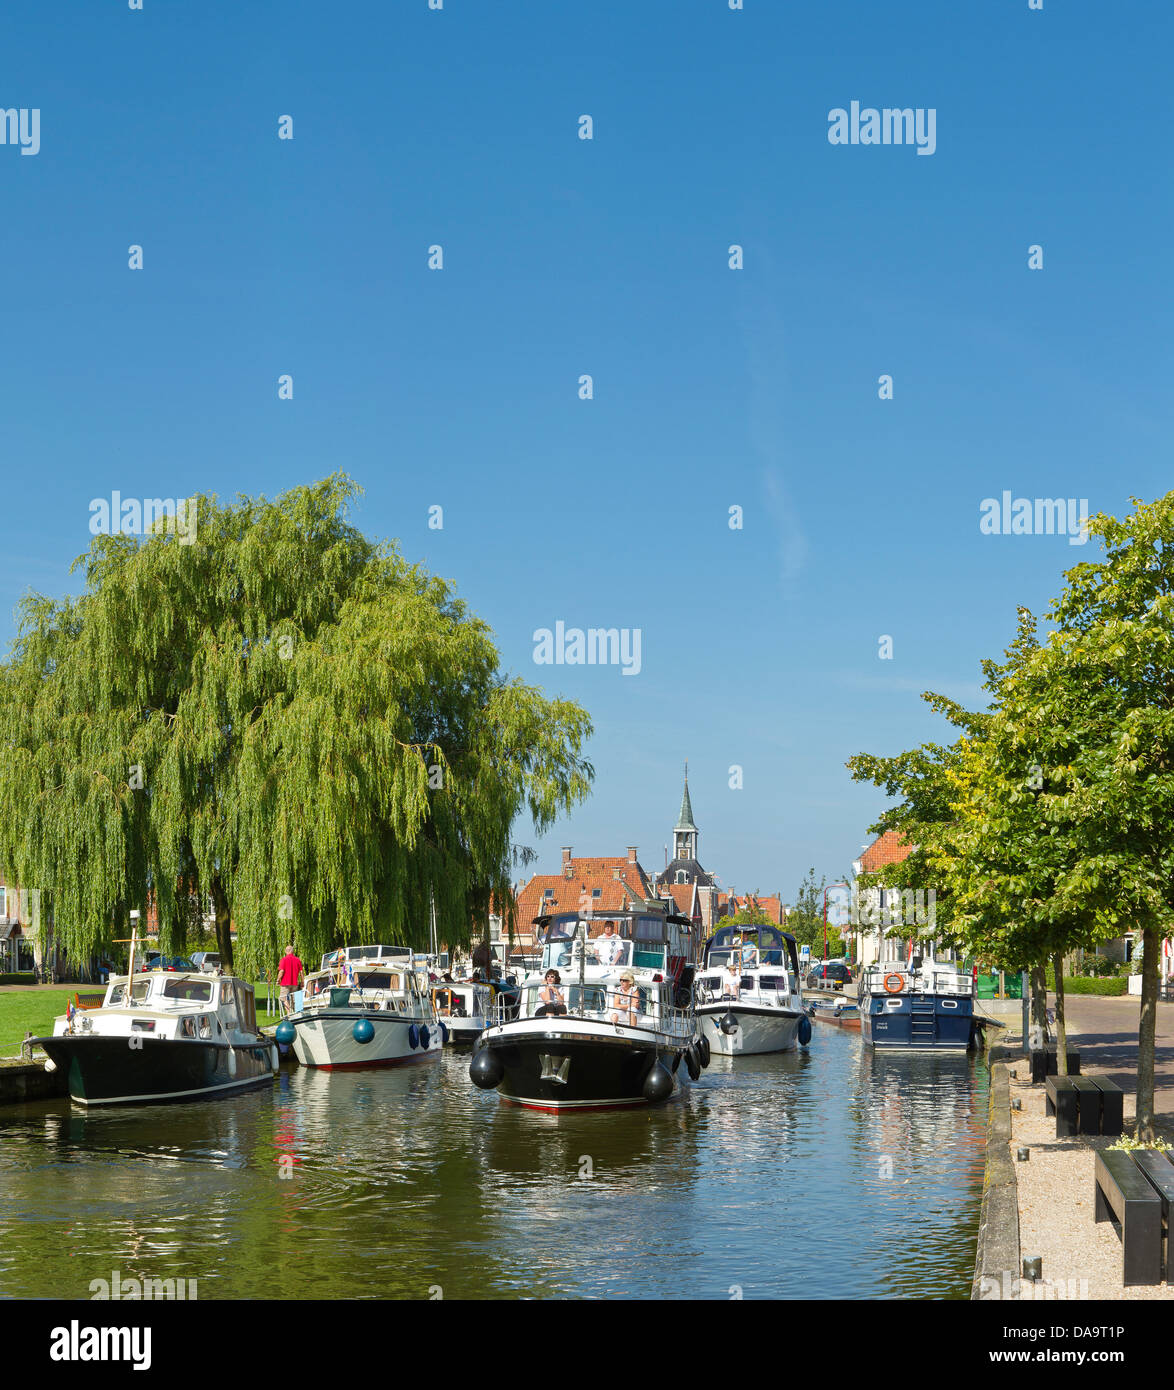 Netherlands, Holland, Europe, Makkum, Shipping, historic, centre, city, village, water, trees, summer, people, ships, - Stock Image